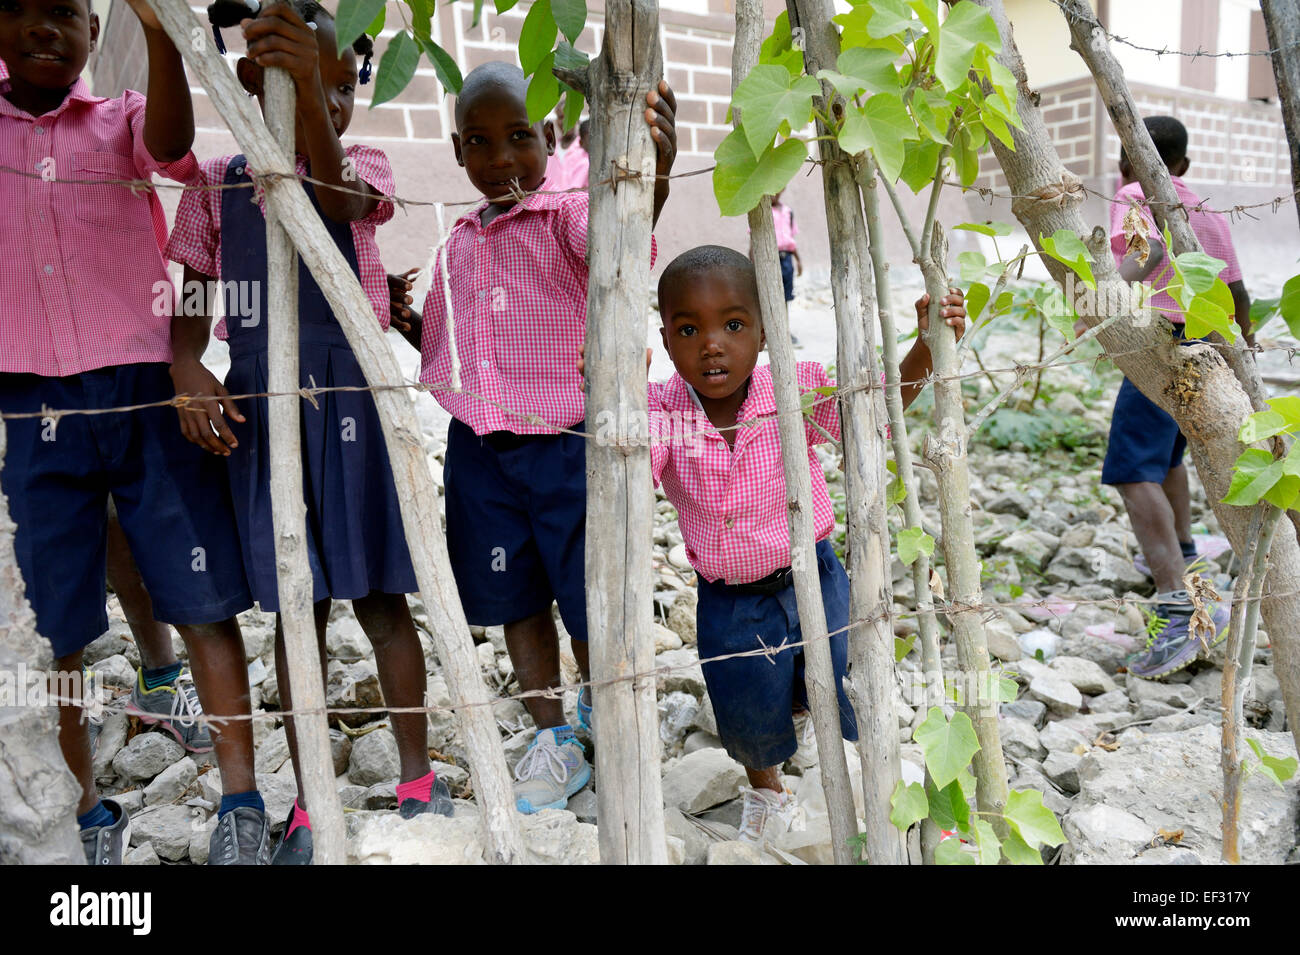 Schoolboys standing behind a fence, Bresilienne, Sud-Est Department, Haiti - Stock Image